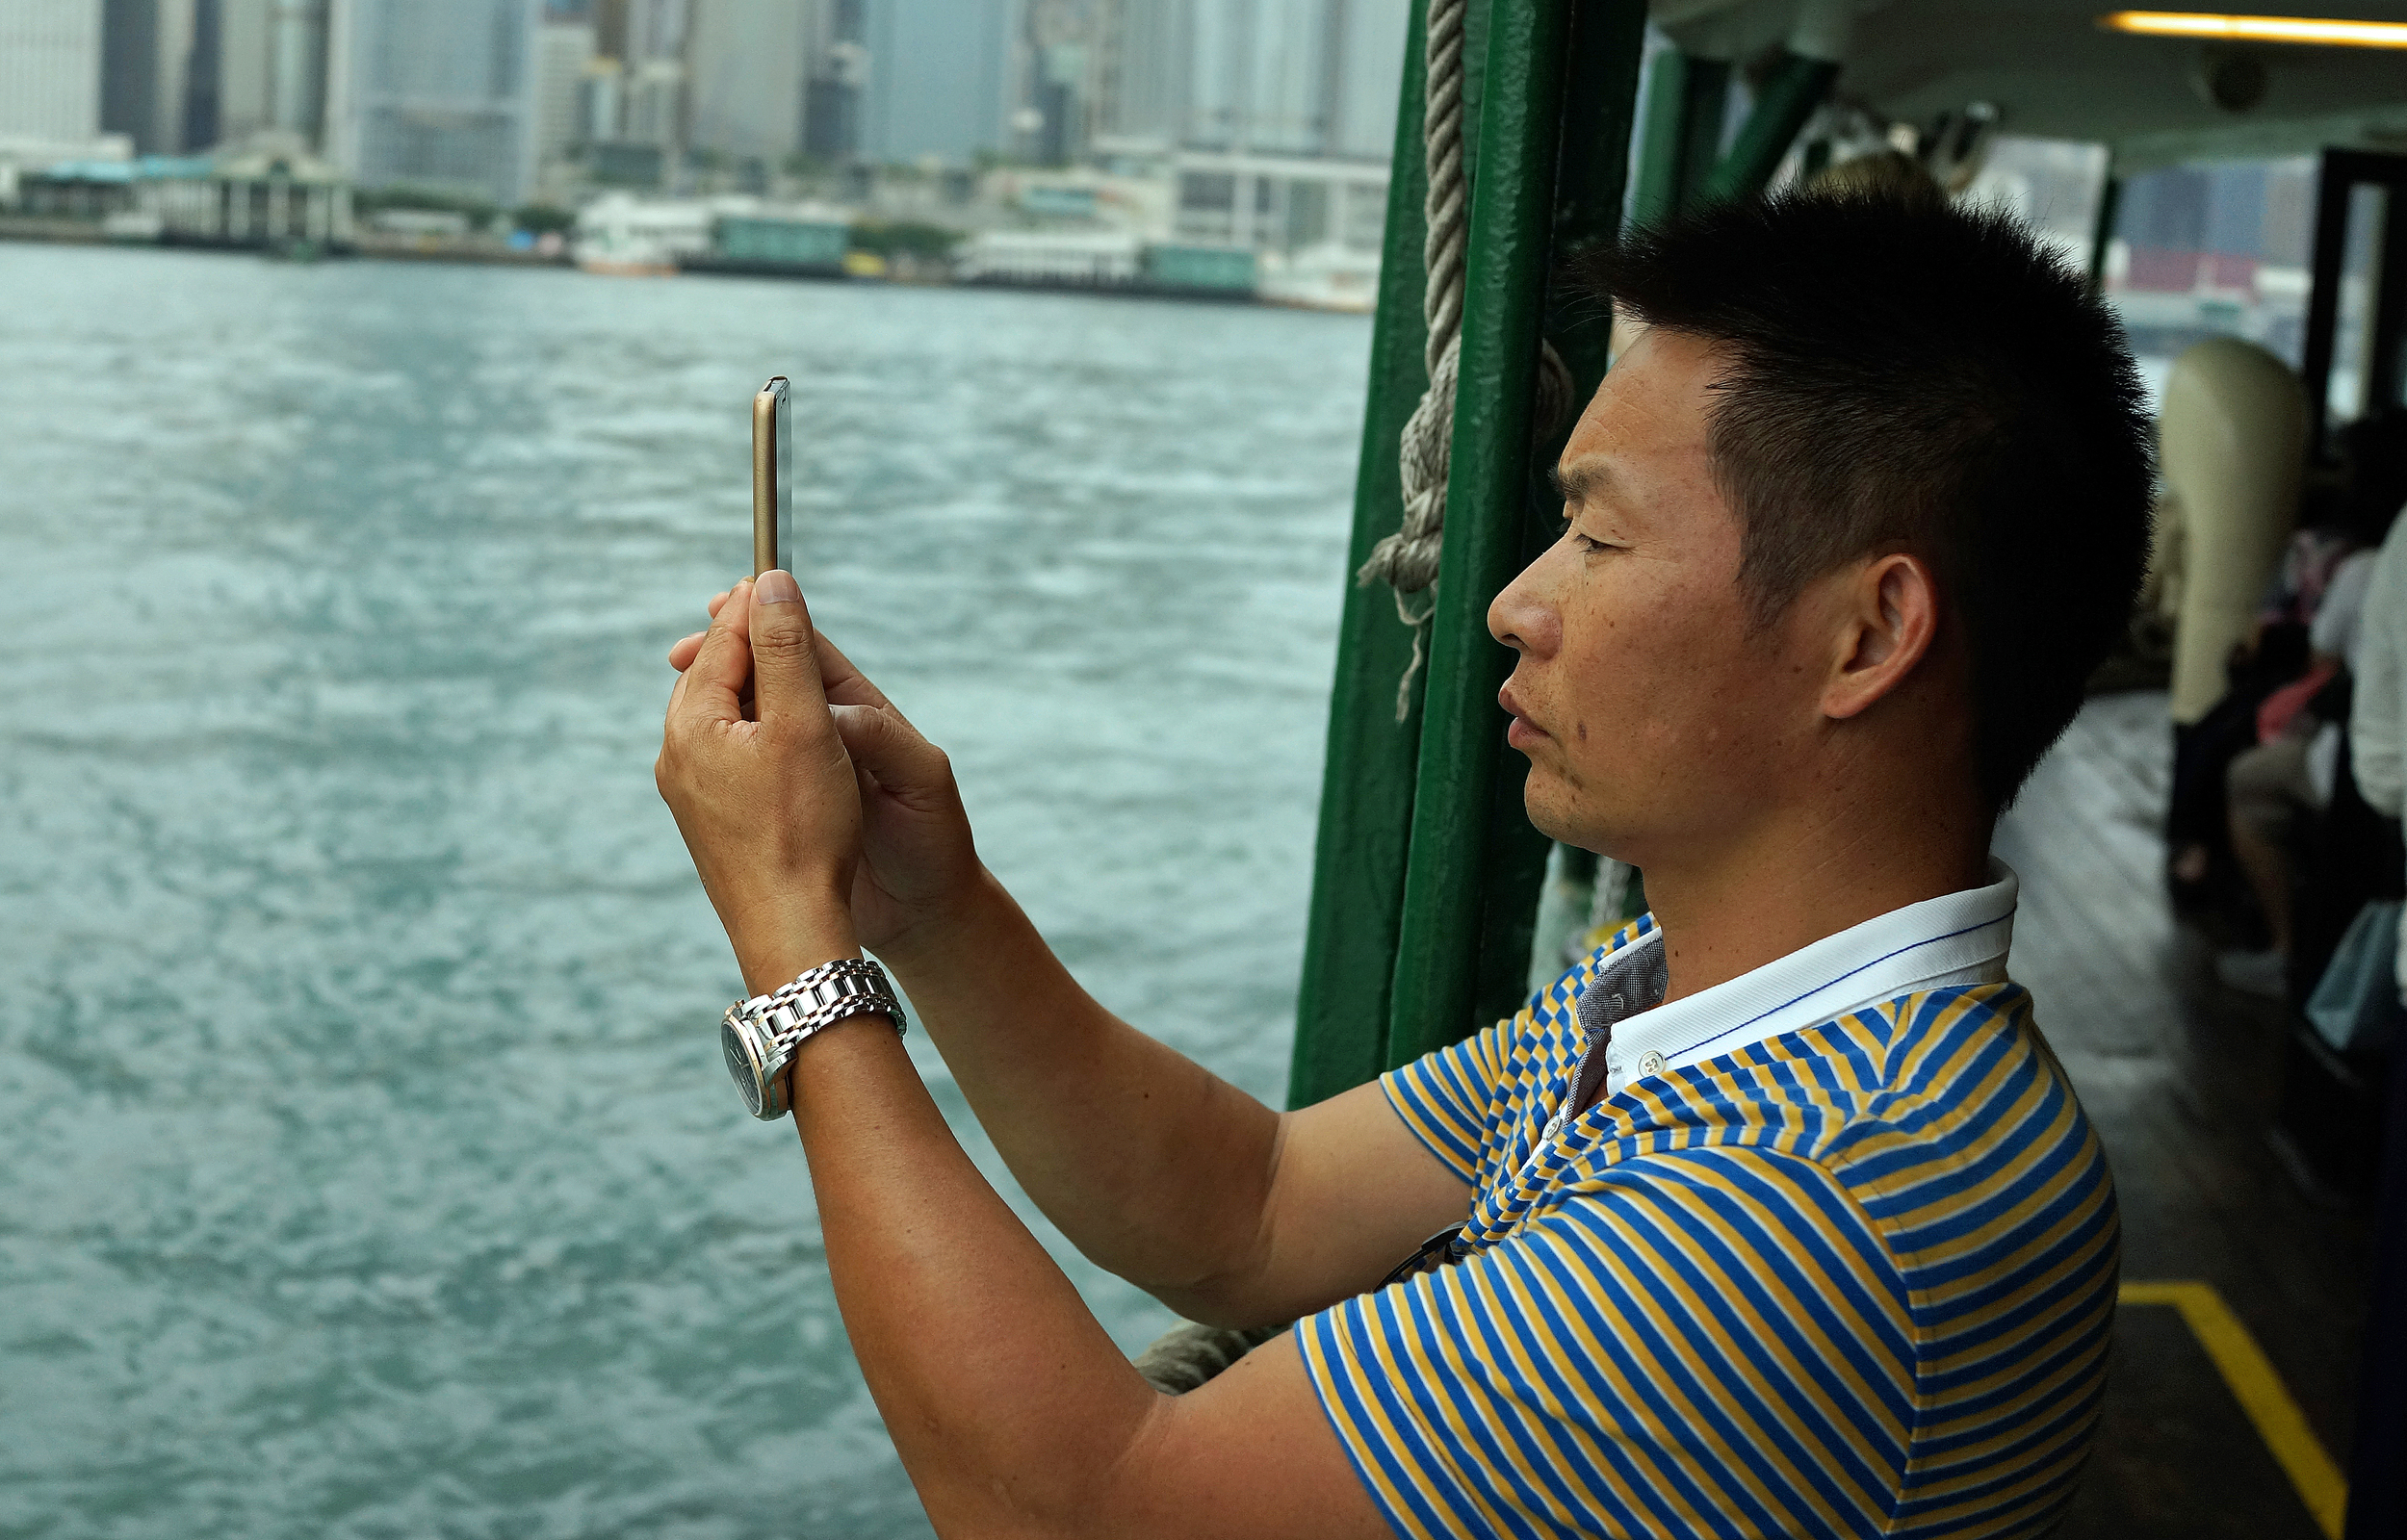 The selfie craze in Hong Kong - that's all I am saying.